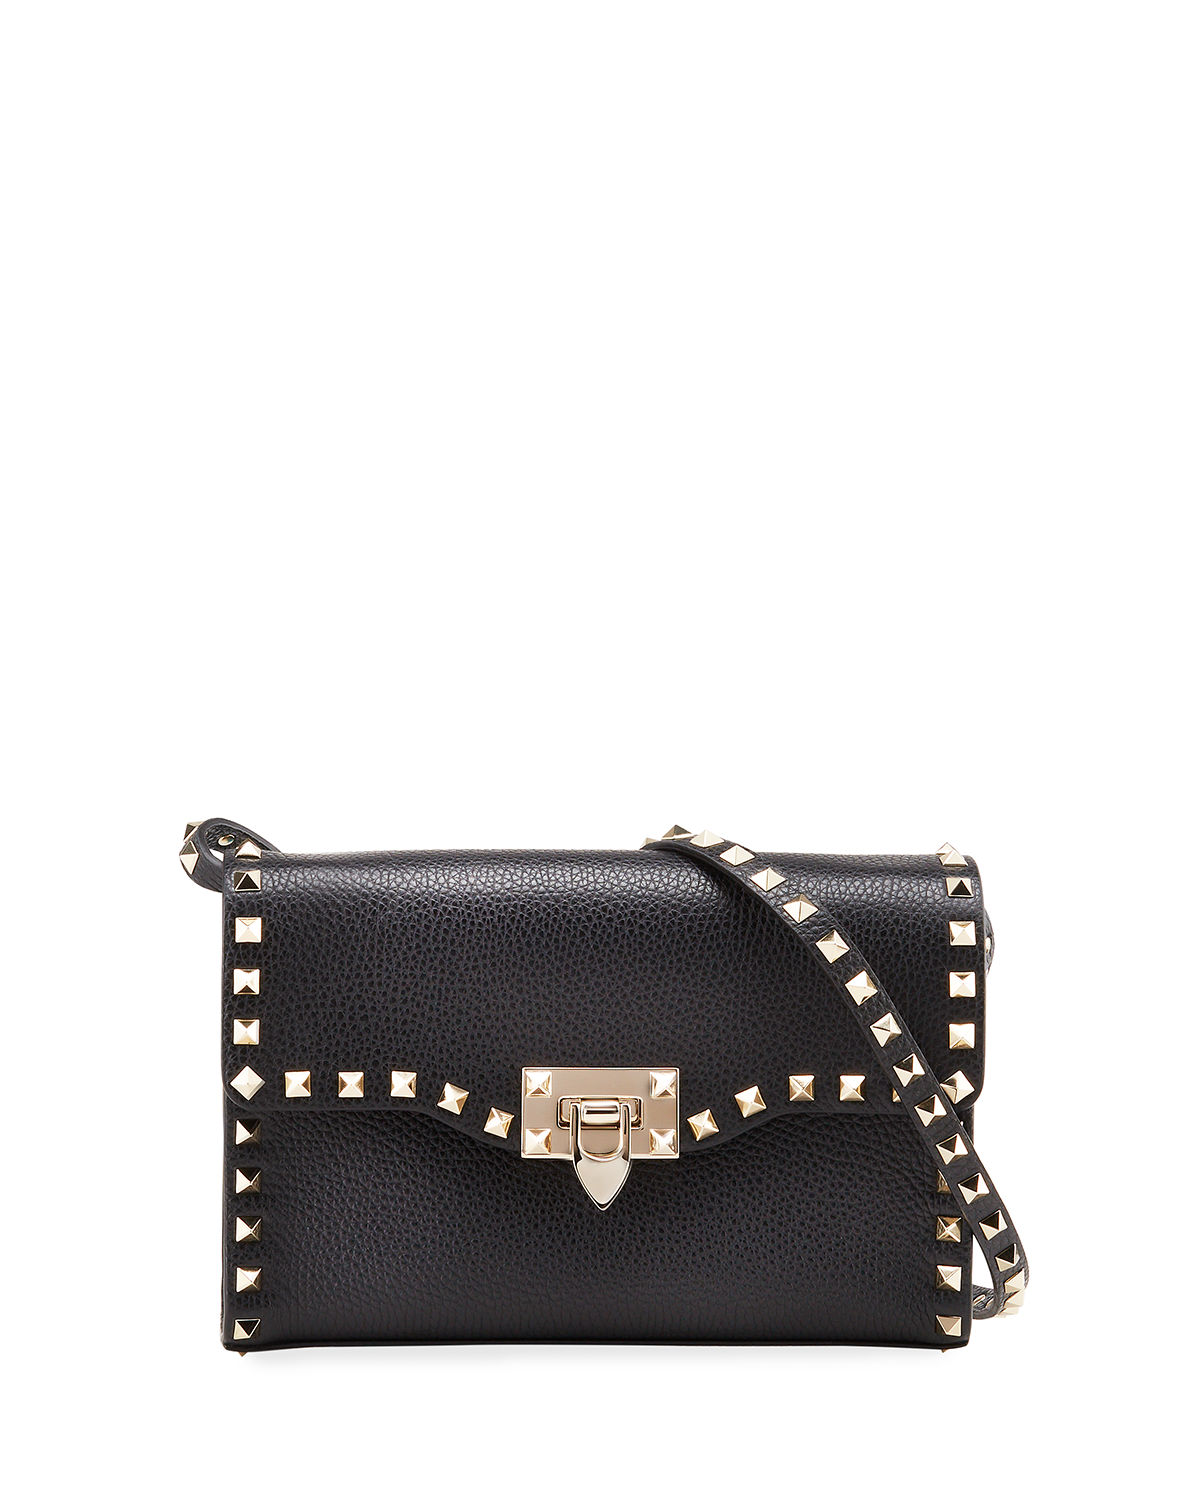 8c6805b318bb5 Valentino Garavani Rockstud Medium Shoulder Bag